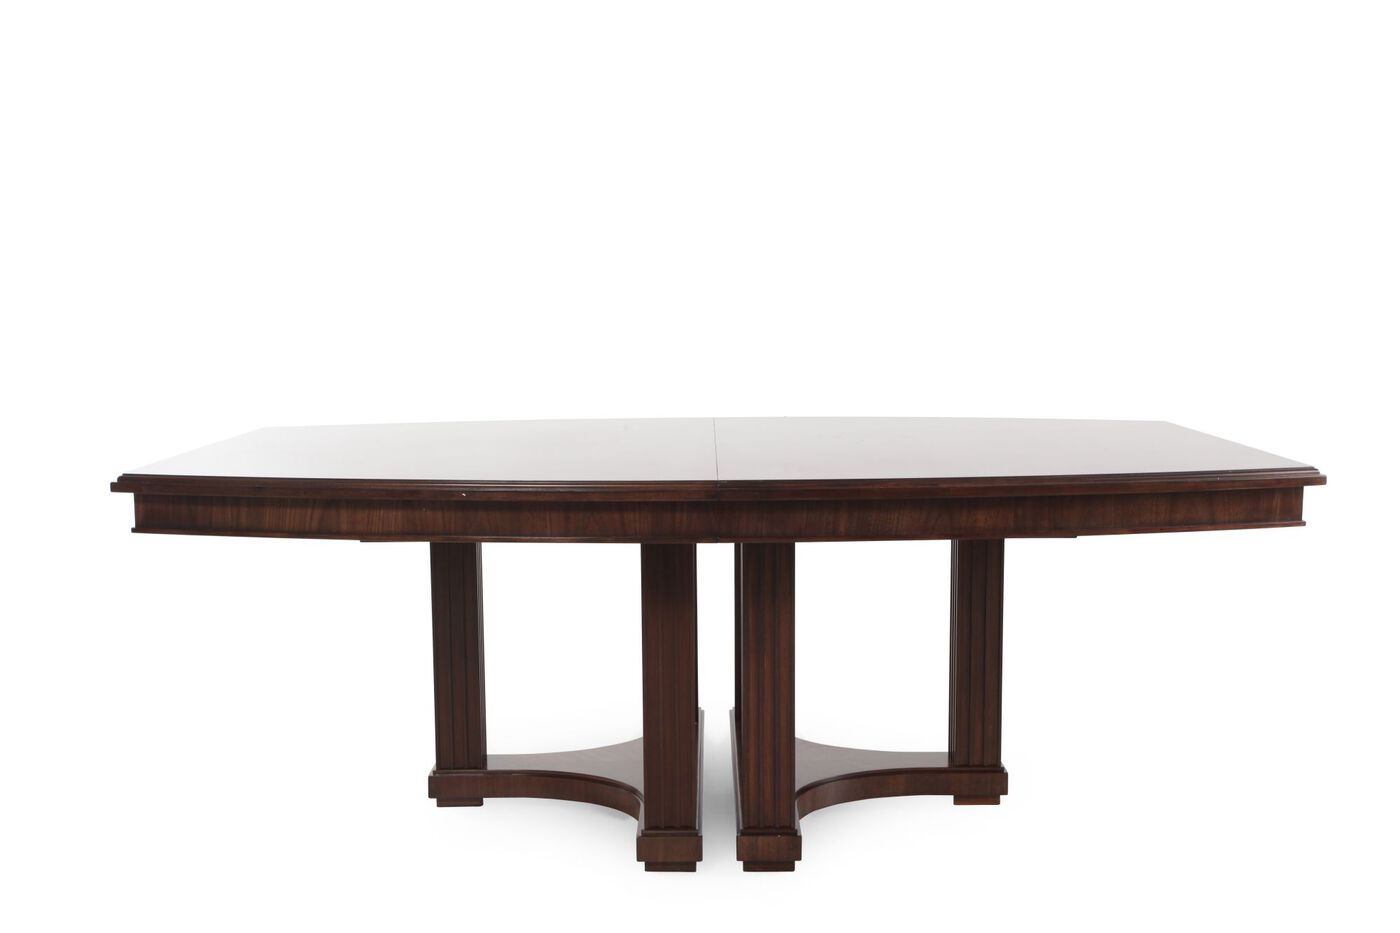 Marge Carson Dining Tables Dining Room Furniture Stores Mathis Brothers